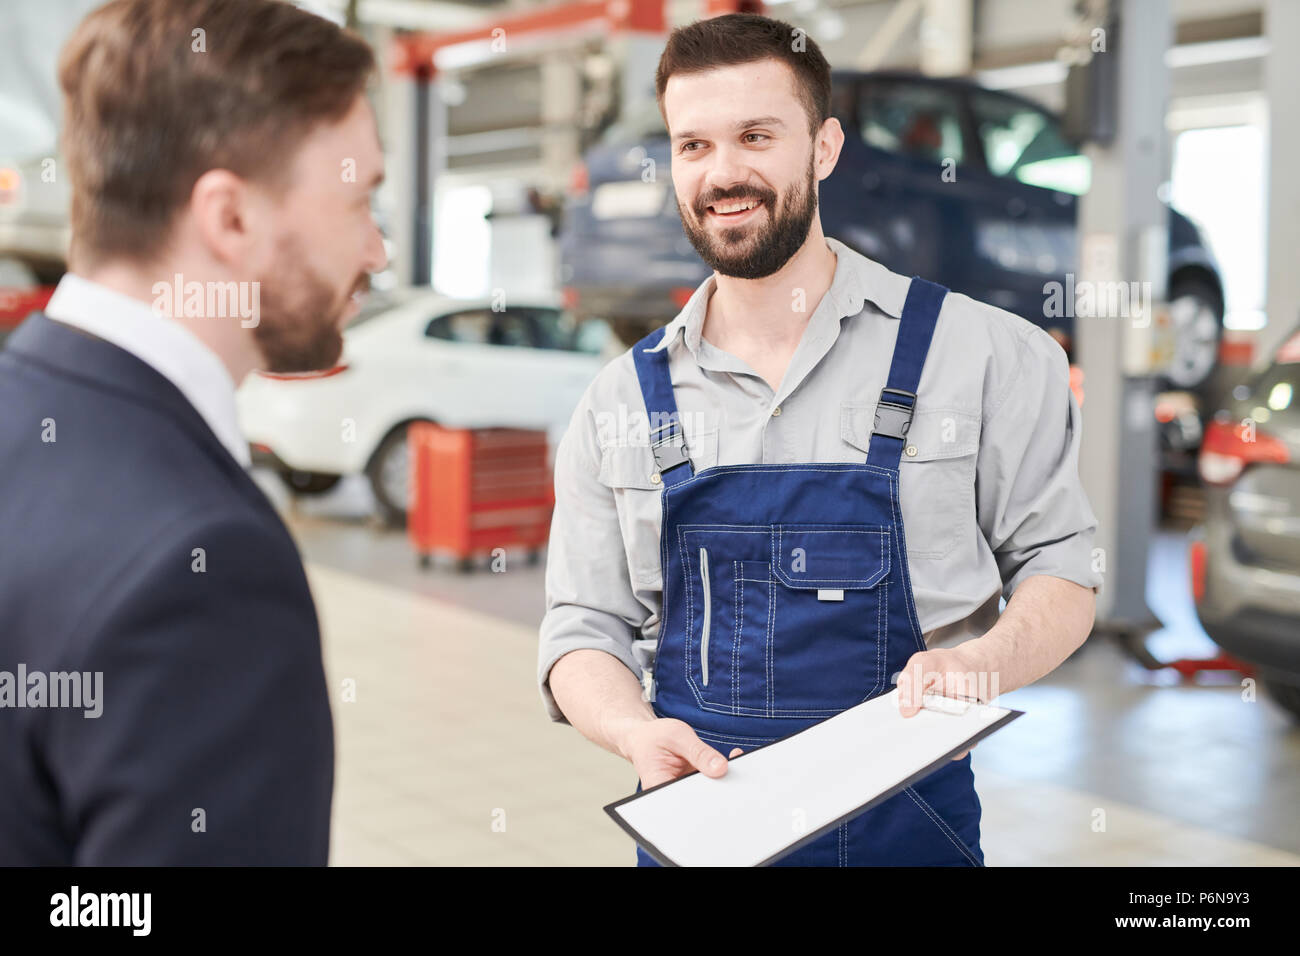 Mechanic Offering Contract to Client - Stock Image